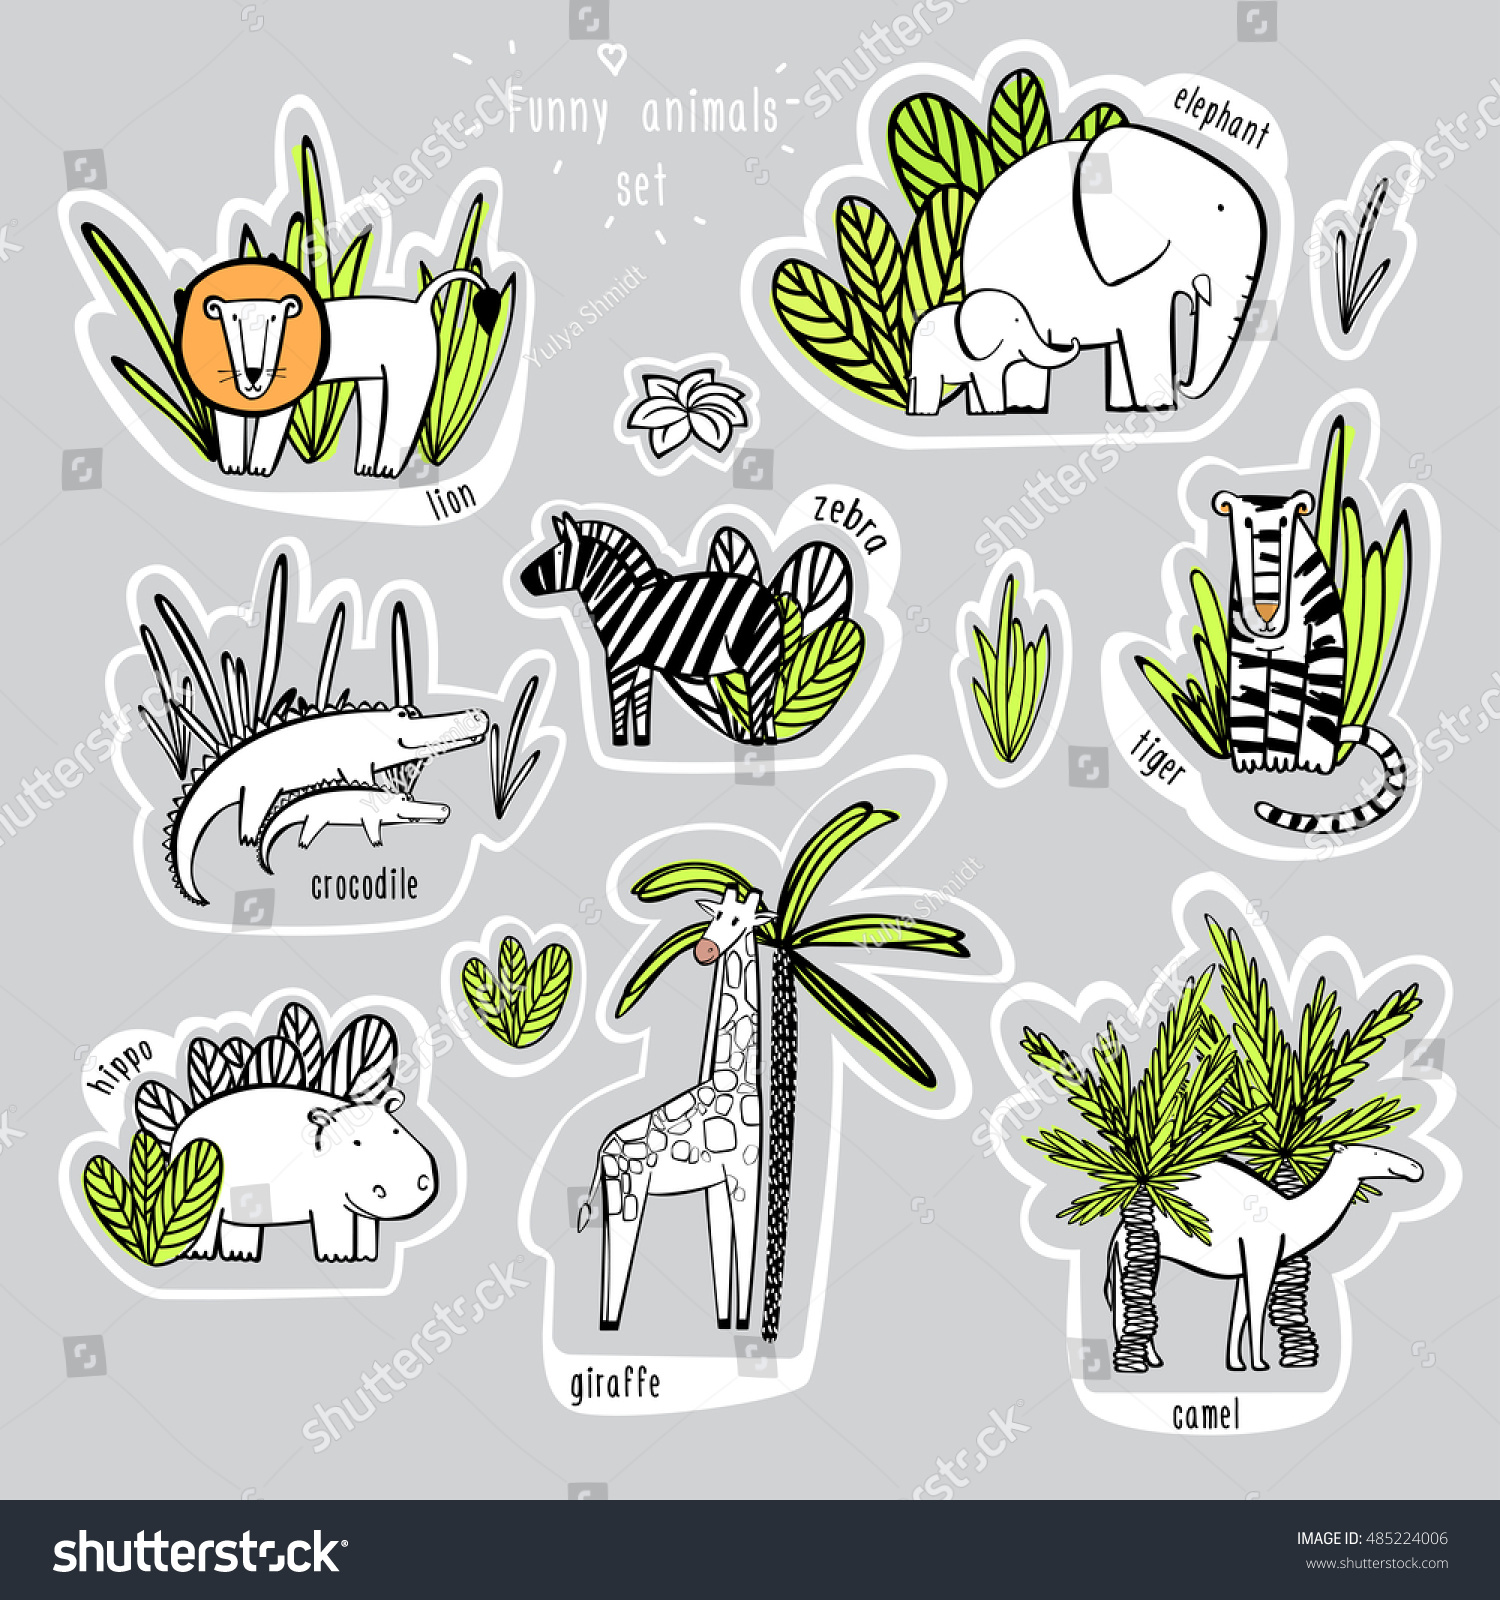 African Animals Vector Set Funny Animals Stock Vector